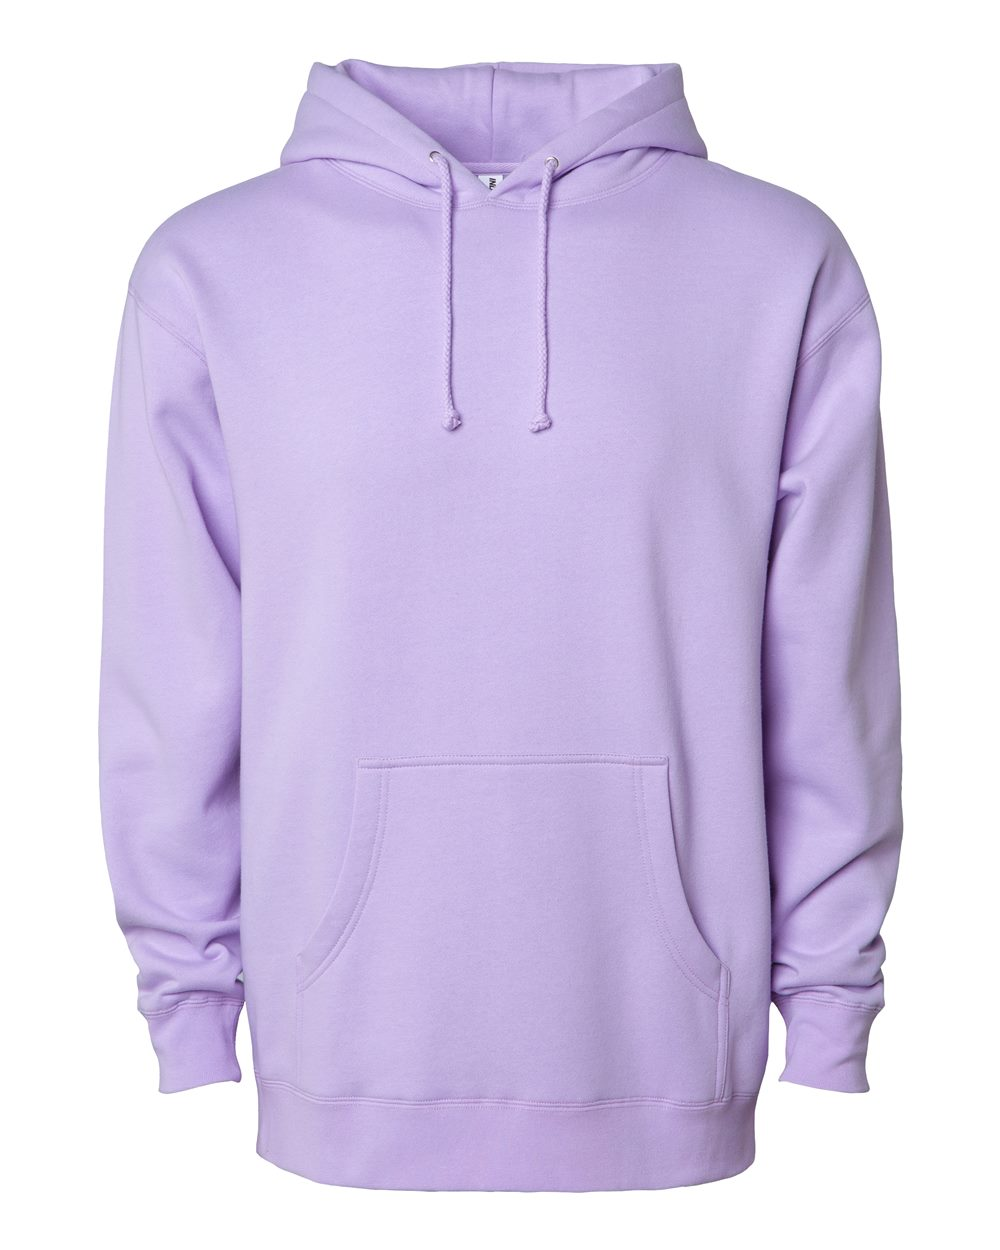 Independent-Trading-Co-Mens-Hooded-Pullover-Sweatshirt-IND4000-up-to-3XL miniature 48